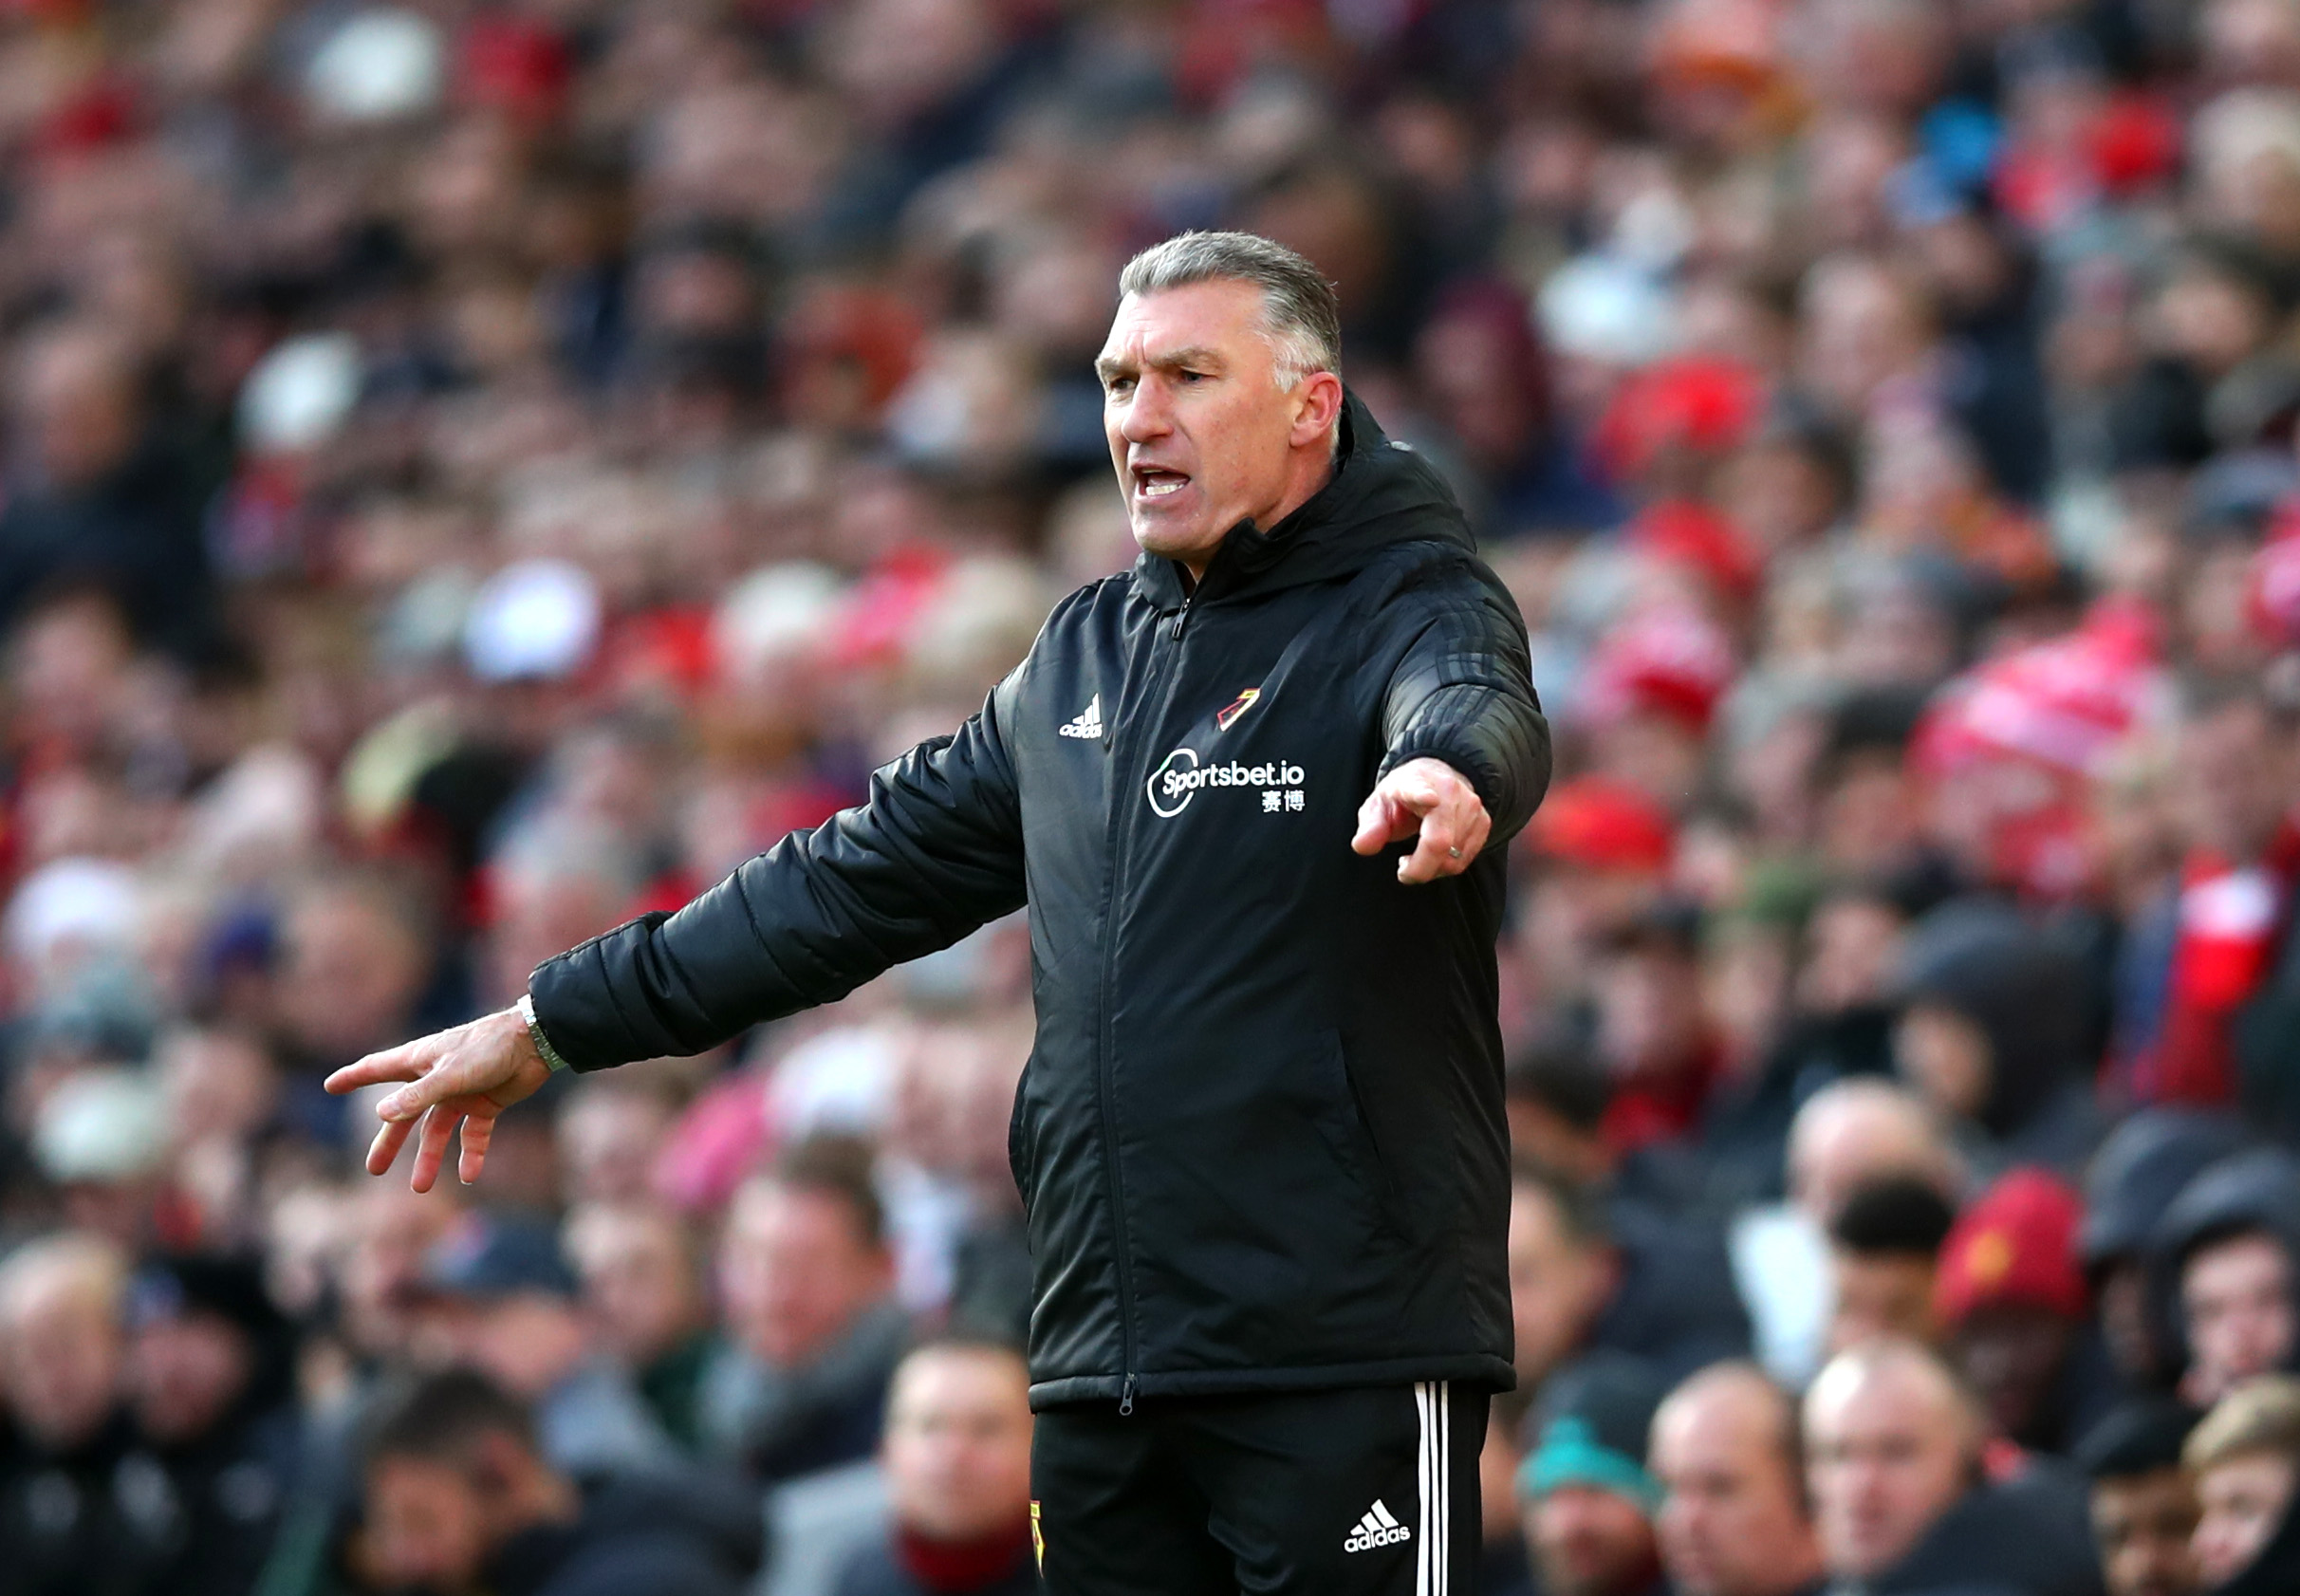 Can Nigel Pearson get Watford's season back on track? (Photo by Clive Brunskill/Getty Images)